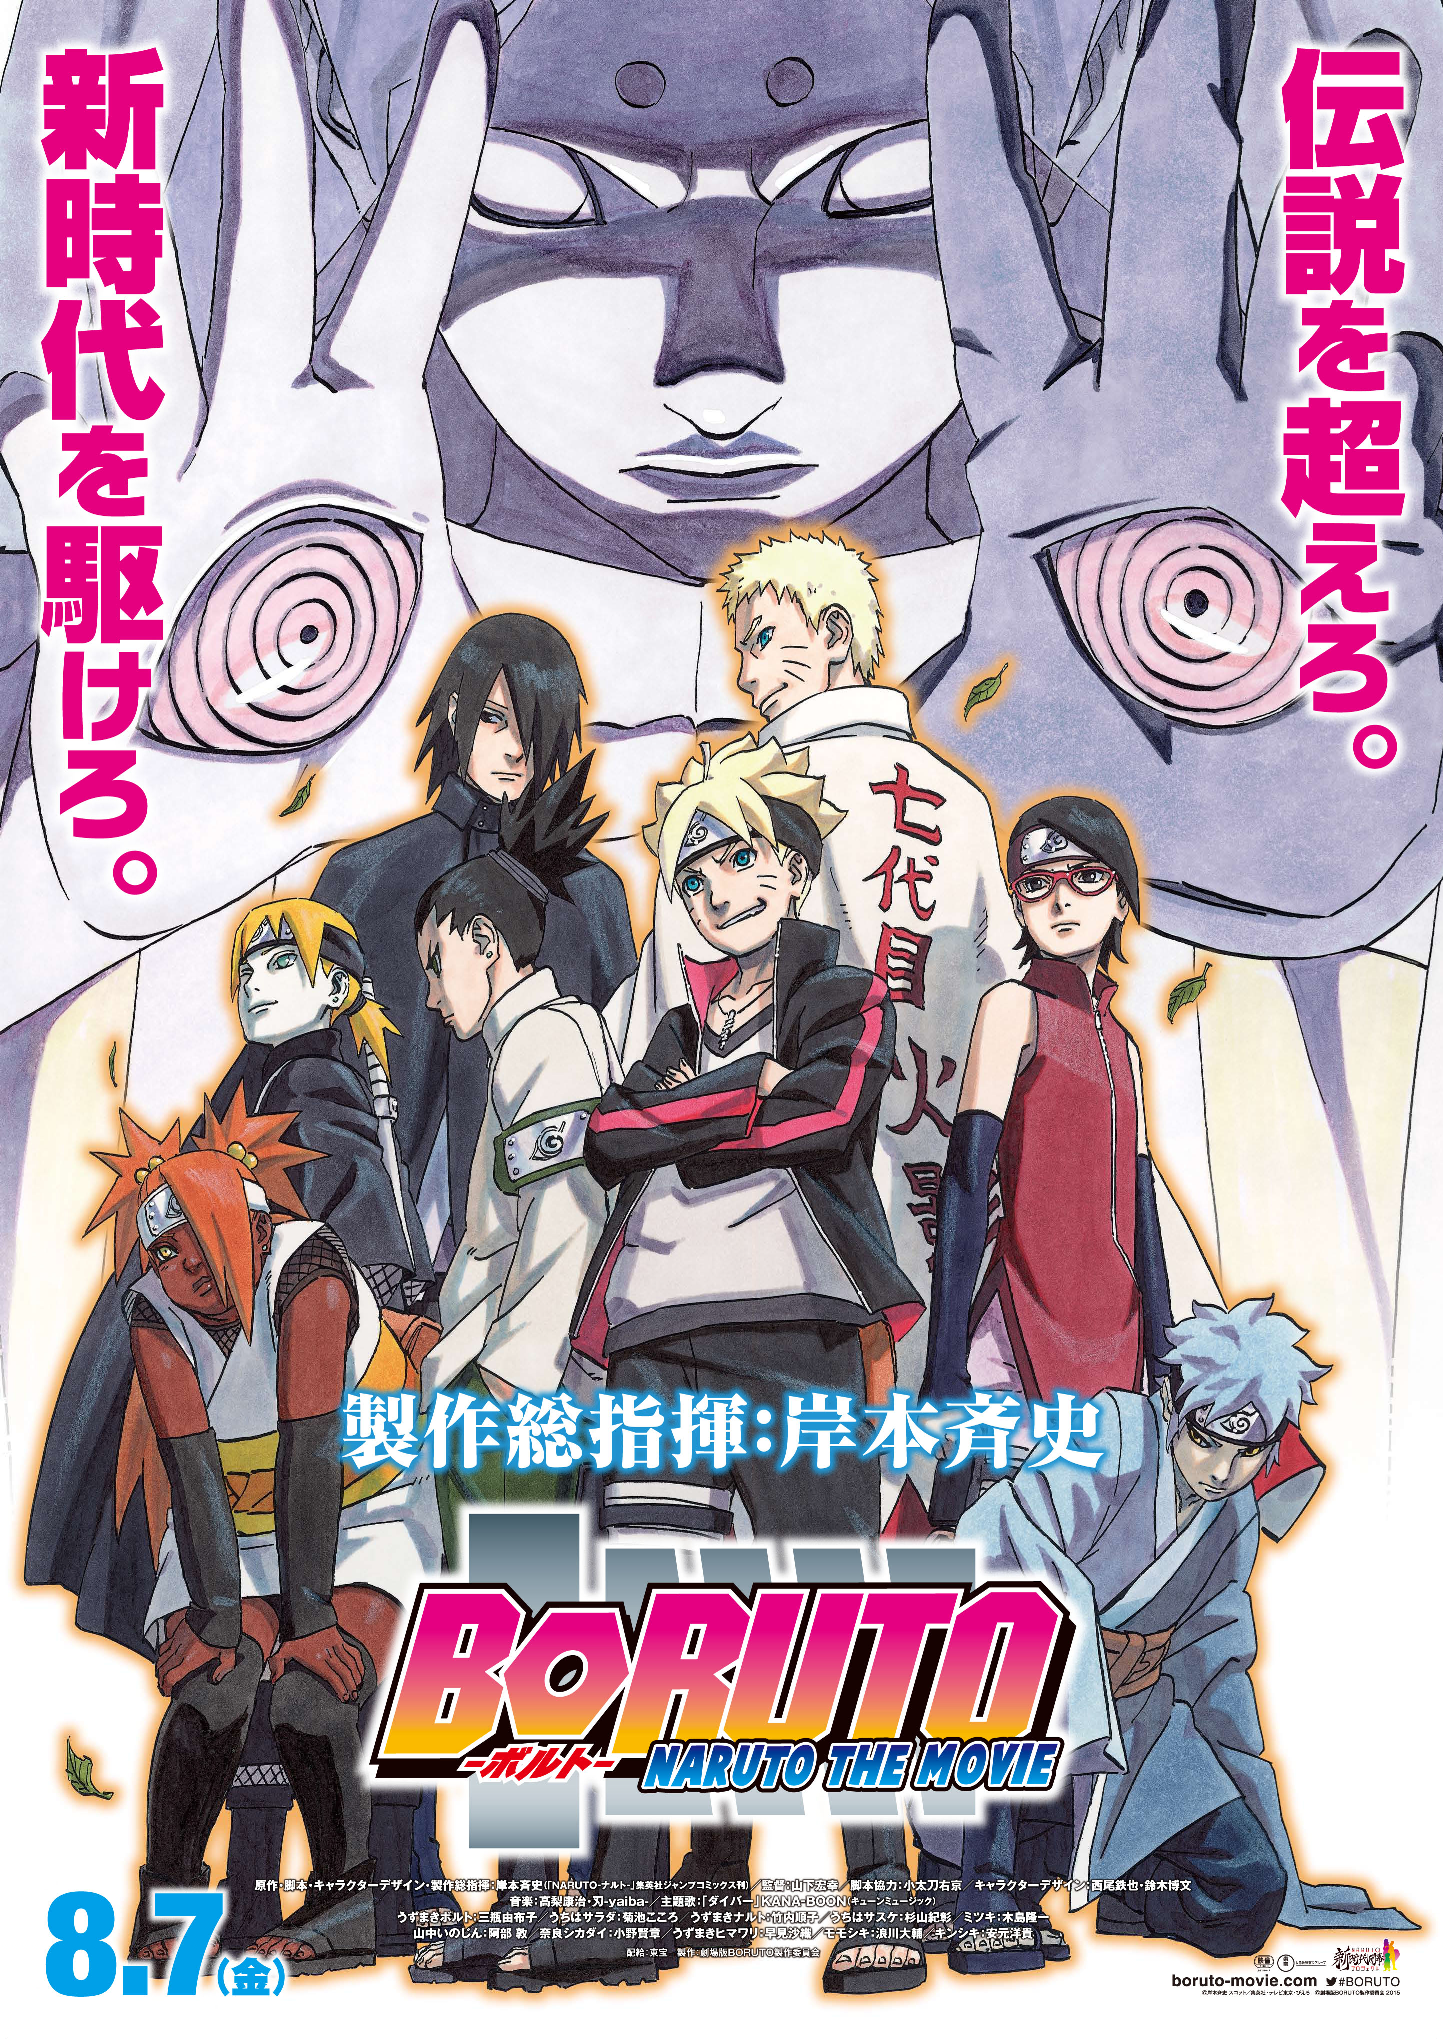 Download Boruto Naruto The Movie HDRip Korean Dub.